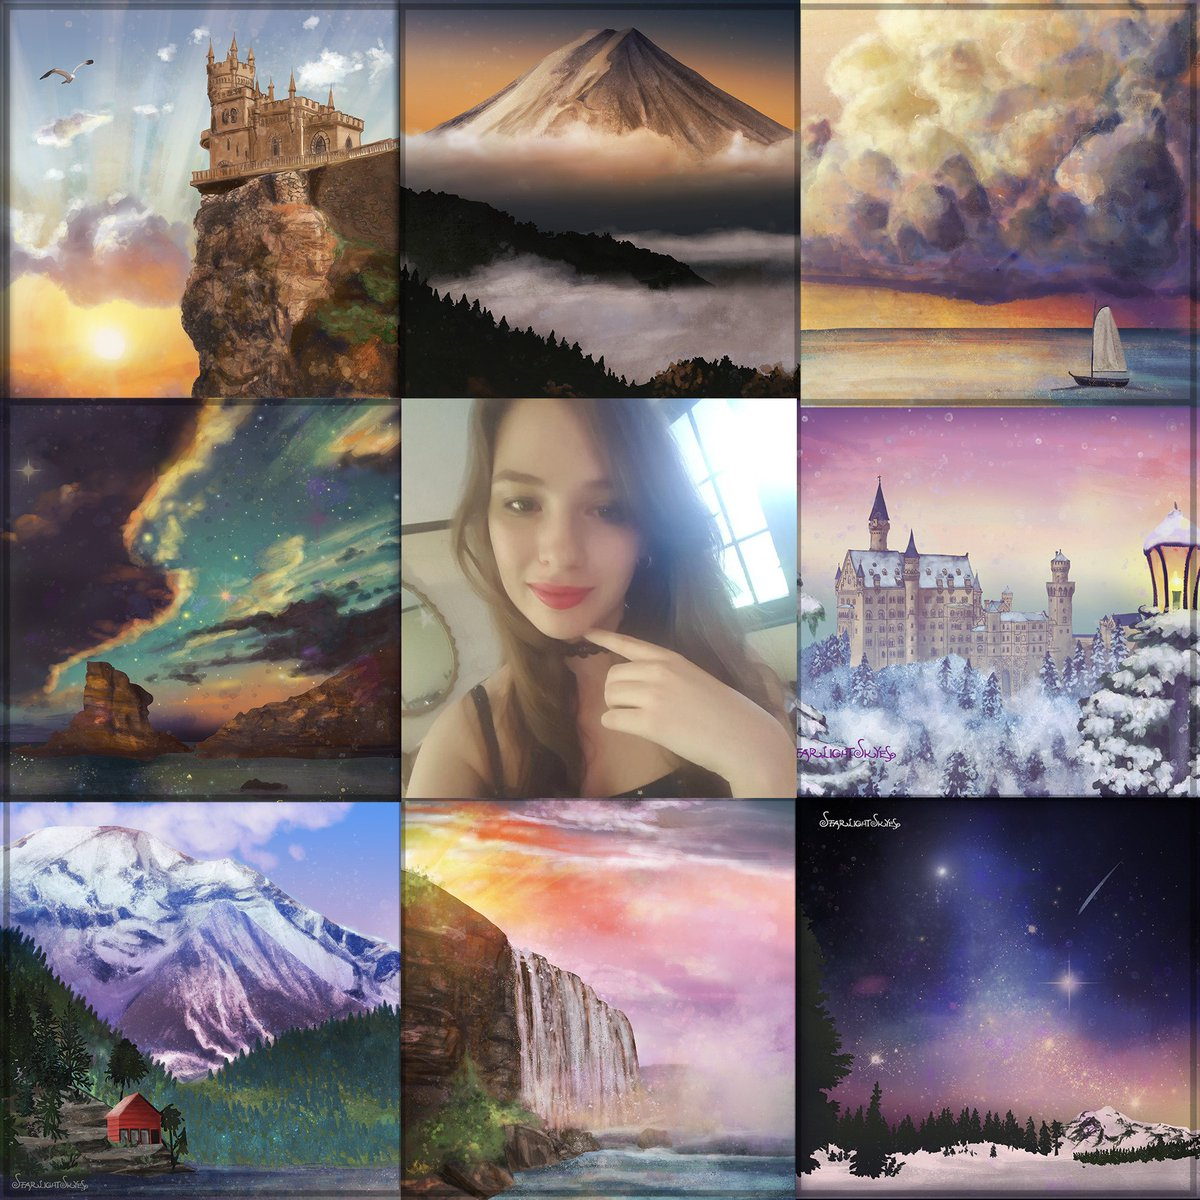 Star  ଘ(੭ˊ꒳ˋ)੭✧GDC & Pax East's photo on #artvsartist